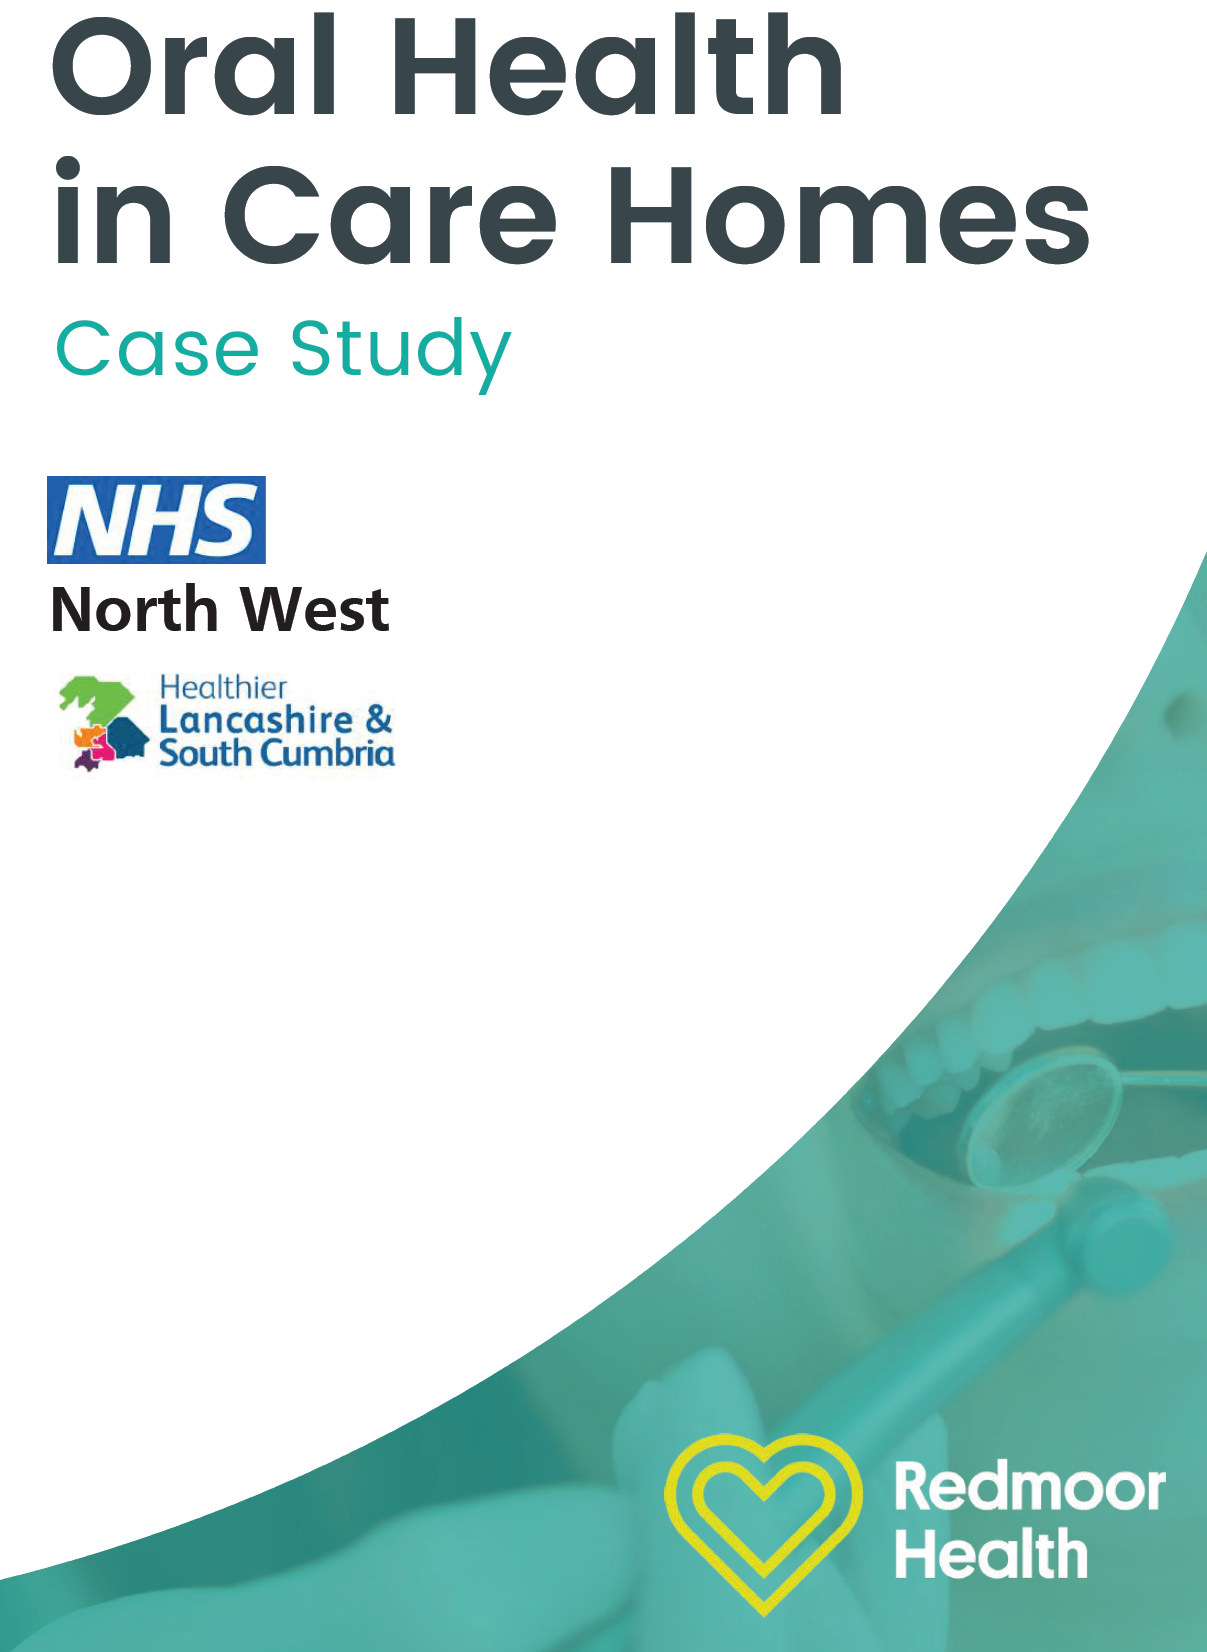 Oral Health in Care Homes